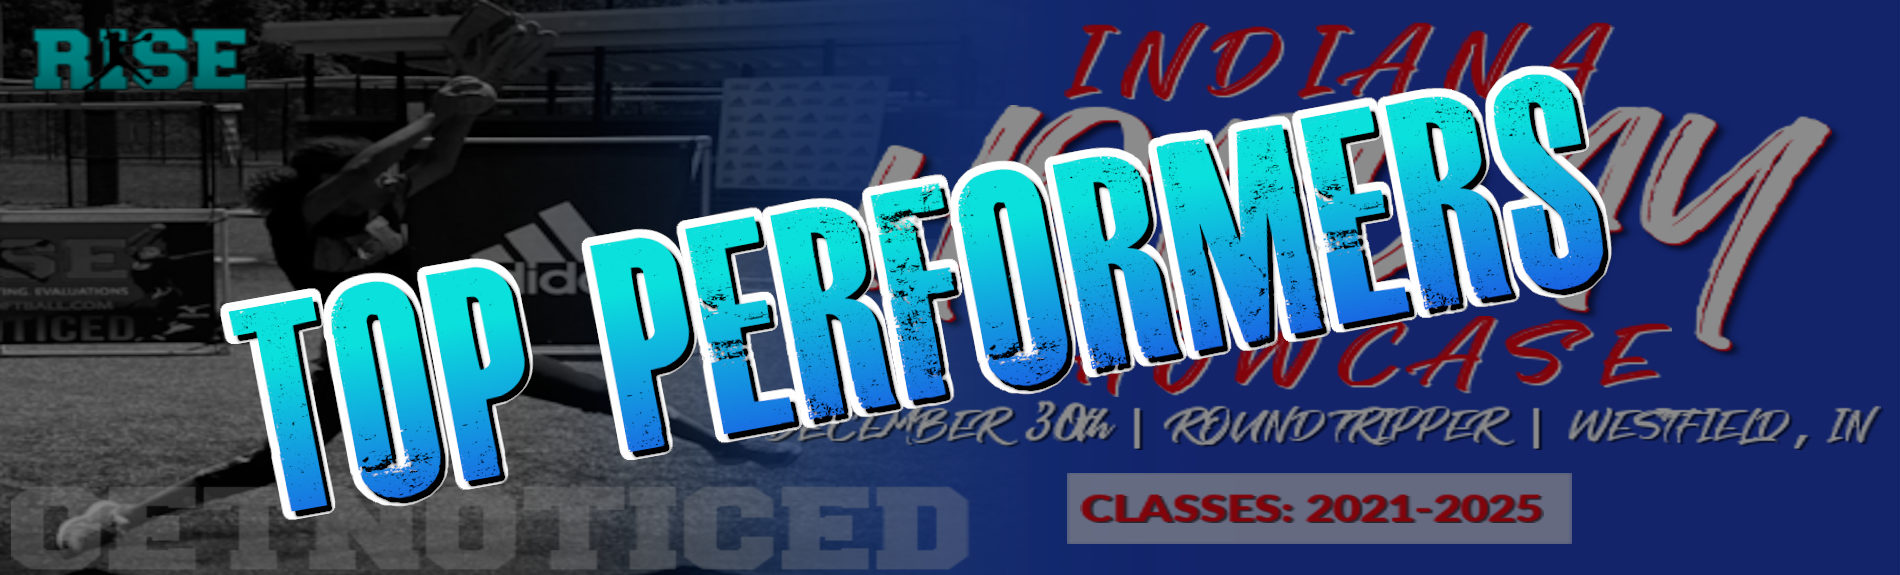 """Indiana Holiday Showcase """"TOP PERFORMERS"""""""